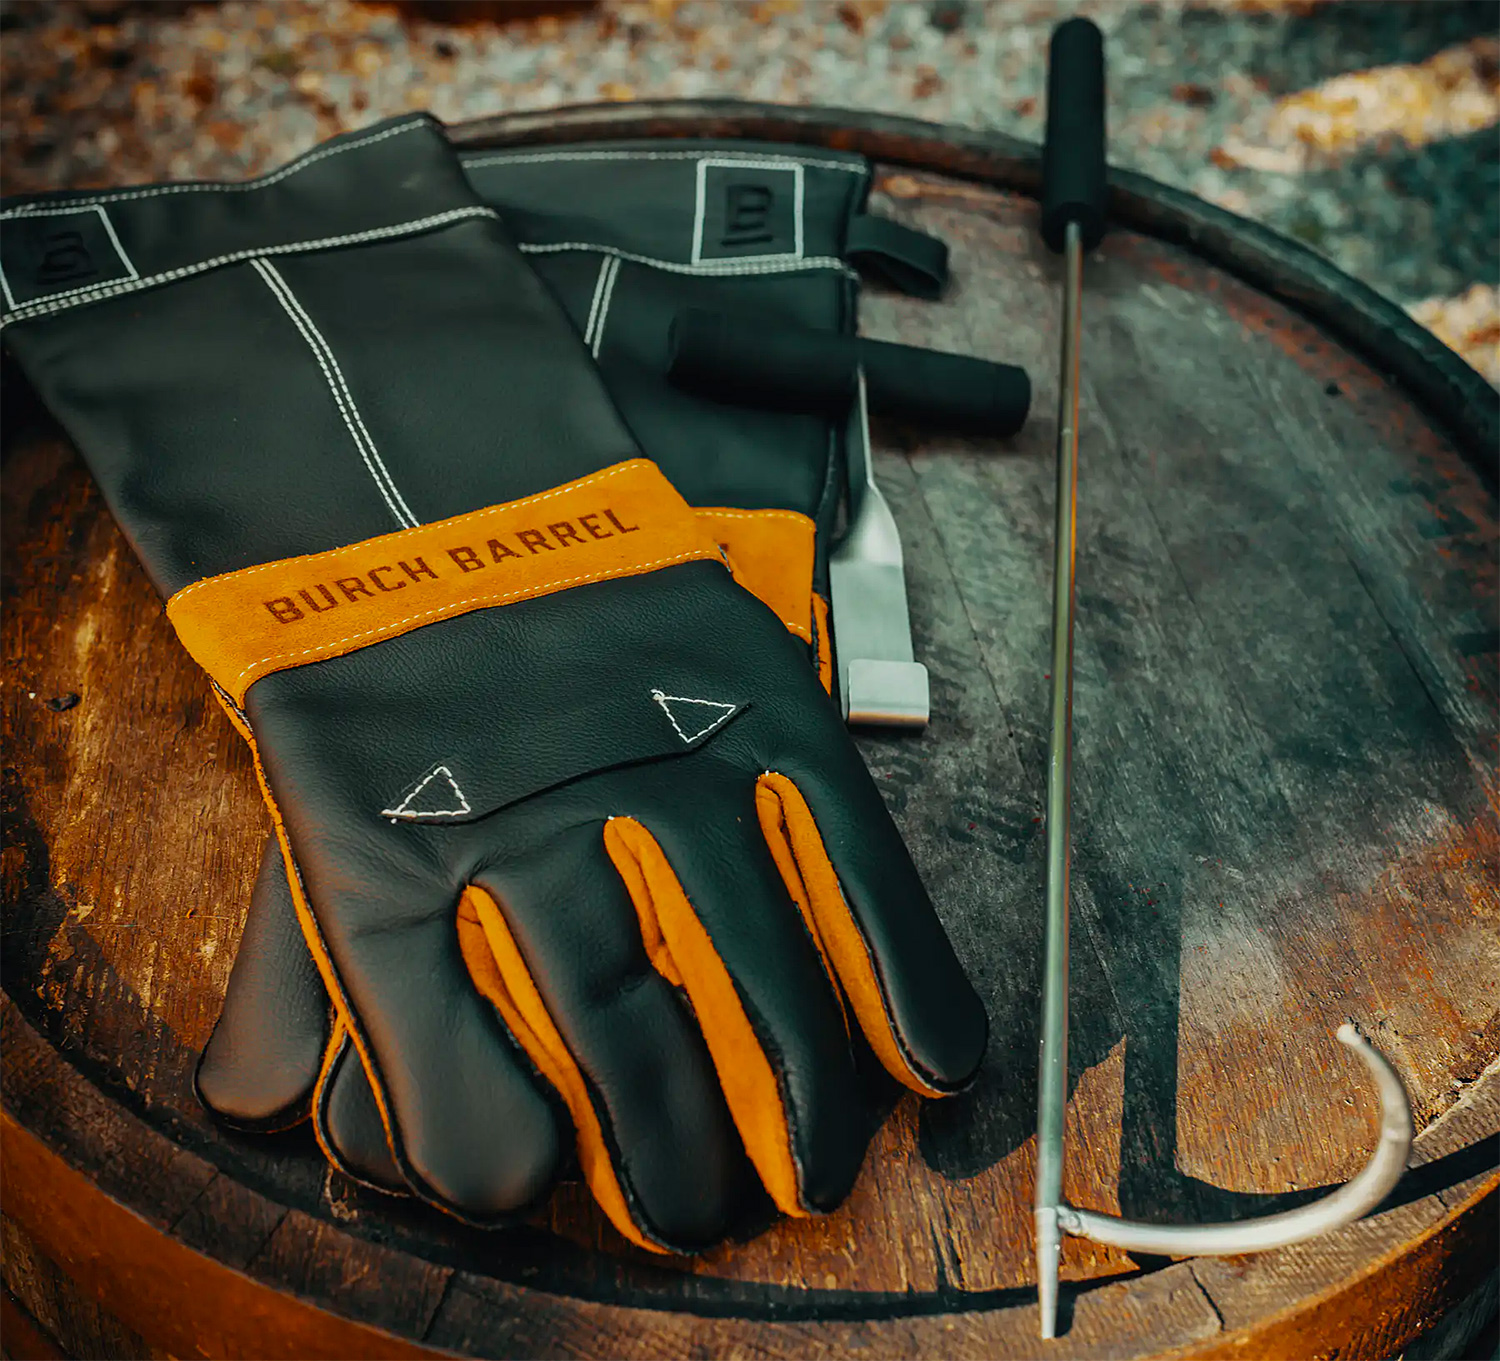 Don't Get Burned: Burch Barrel's Stockman Gloves at werd.com